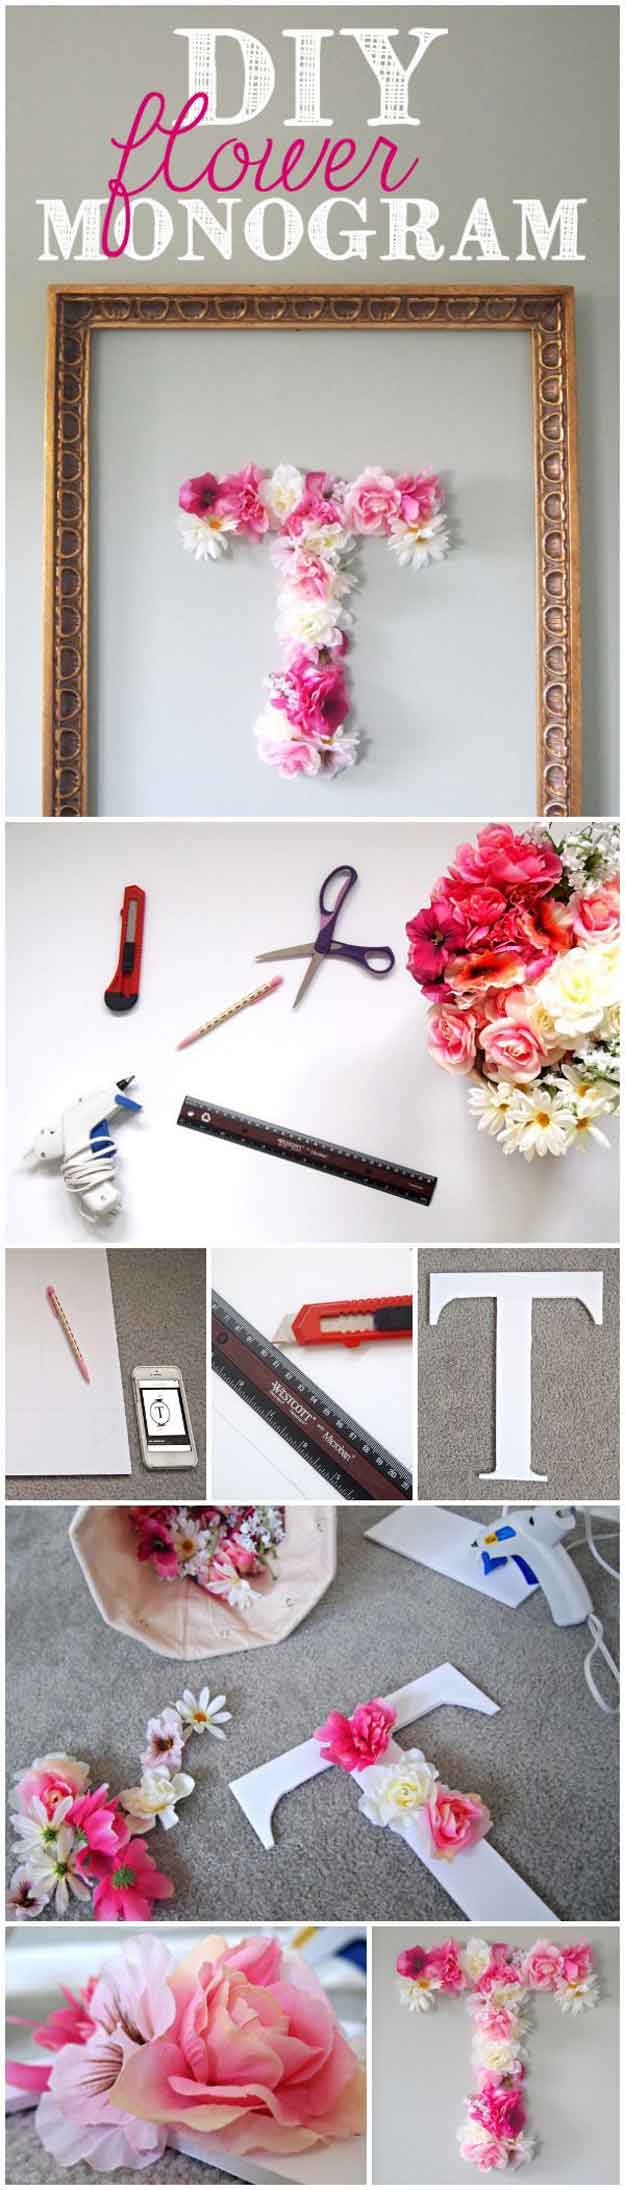 Creative bedroom wall decor ideas - Cute Diy Room Decor Ideas For Teens Diy Bedroom Projects For Teenagers Diy Flower